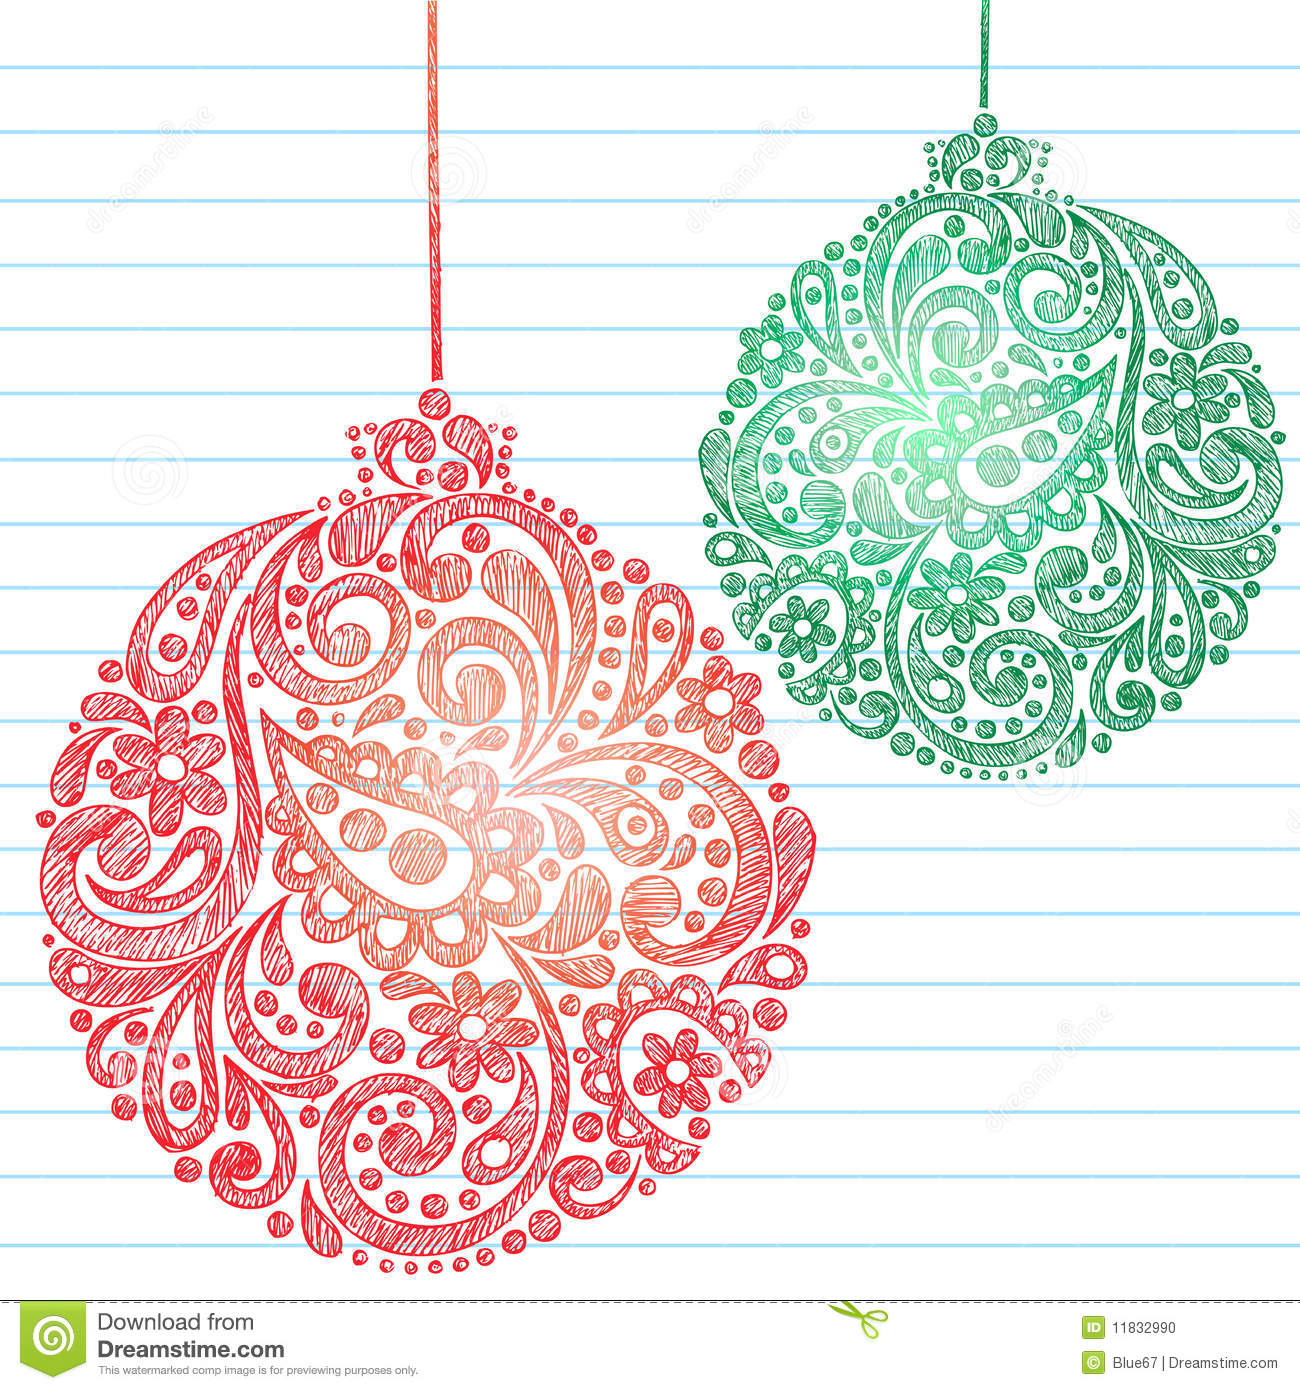 Sketchy Christmas Ornaments Notebook Doodles Stock Vector ...